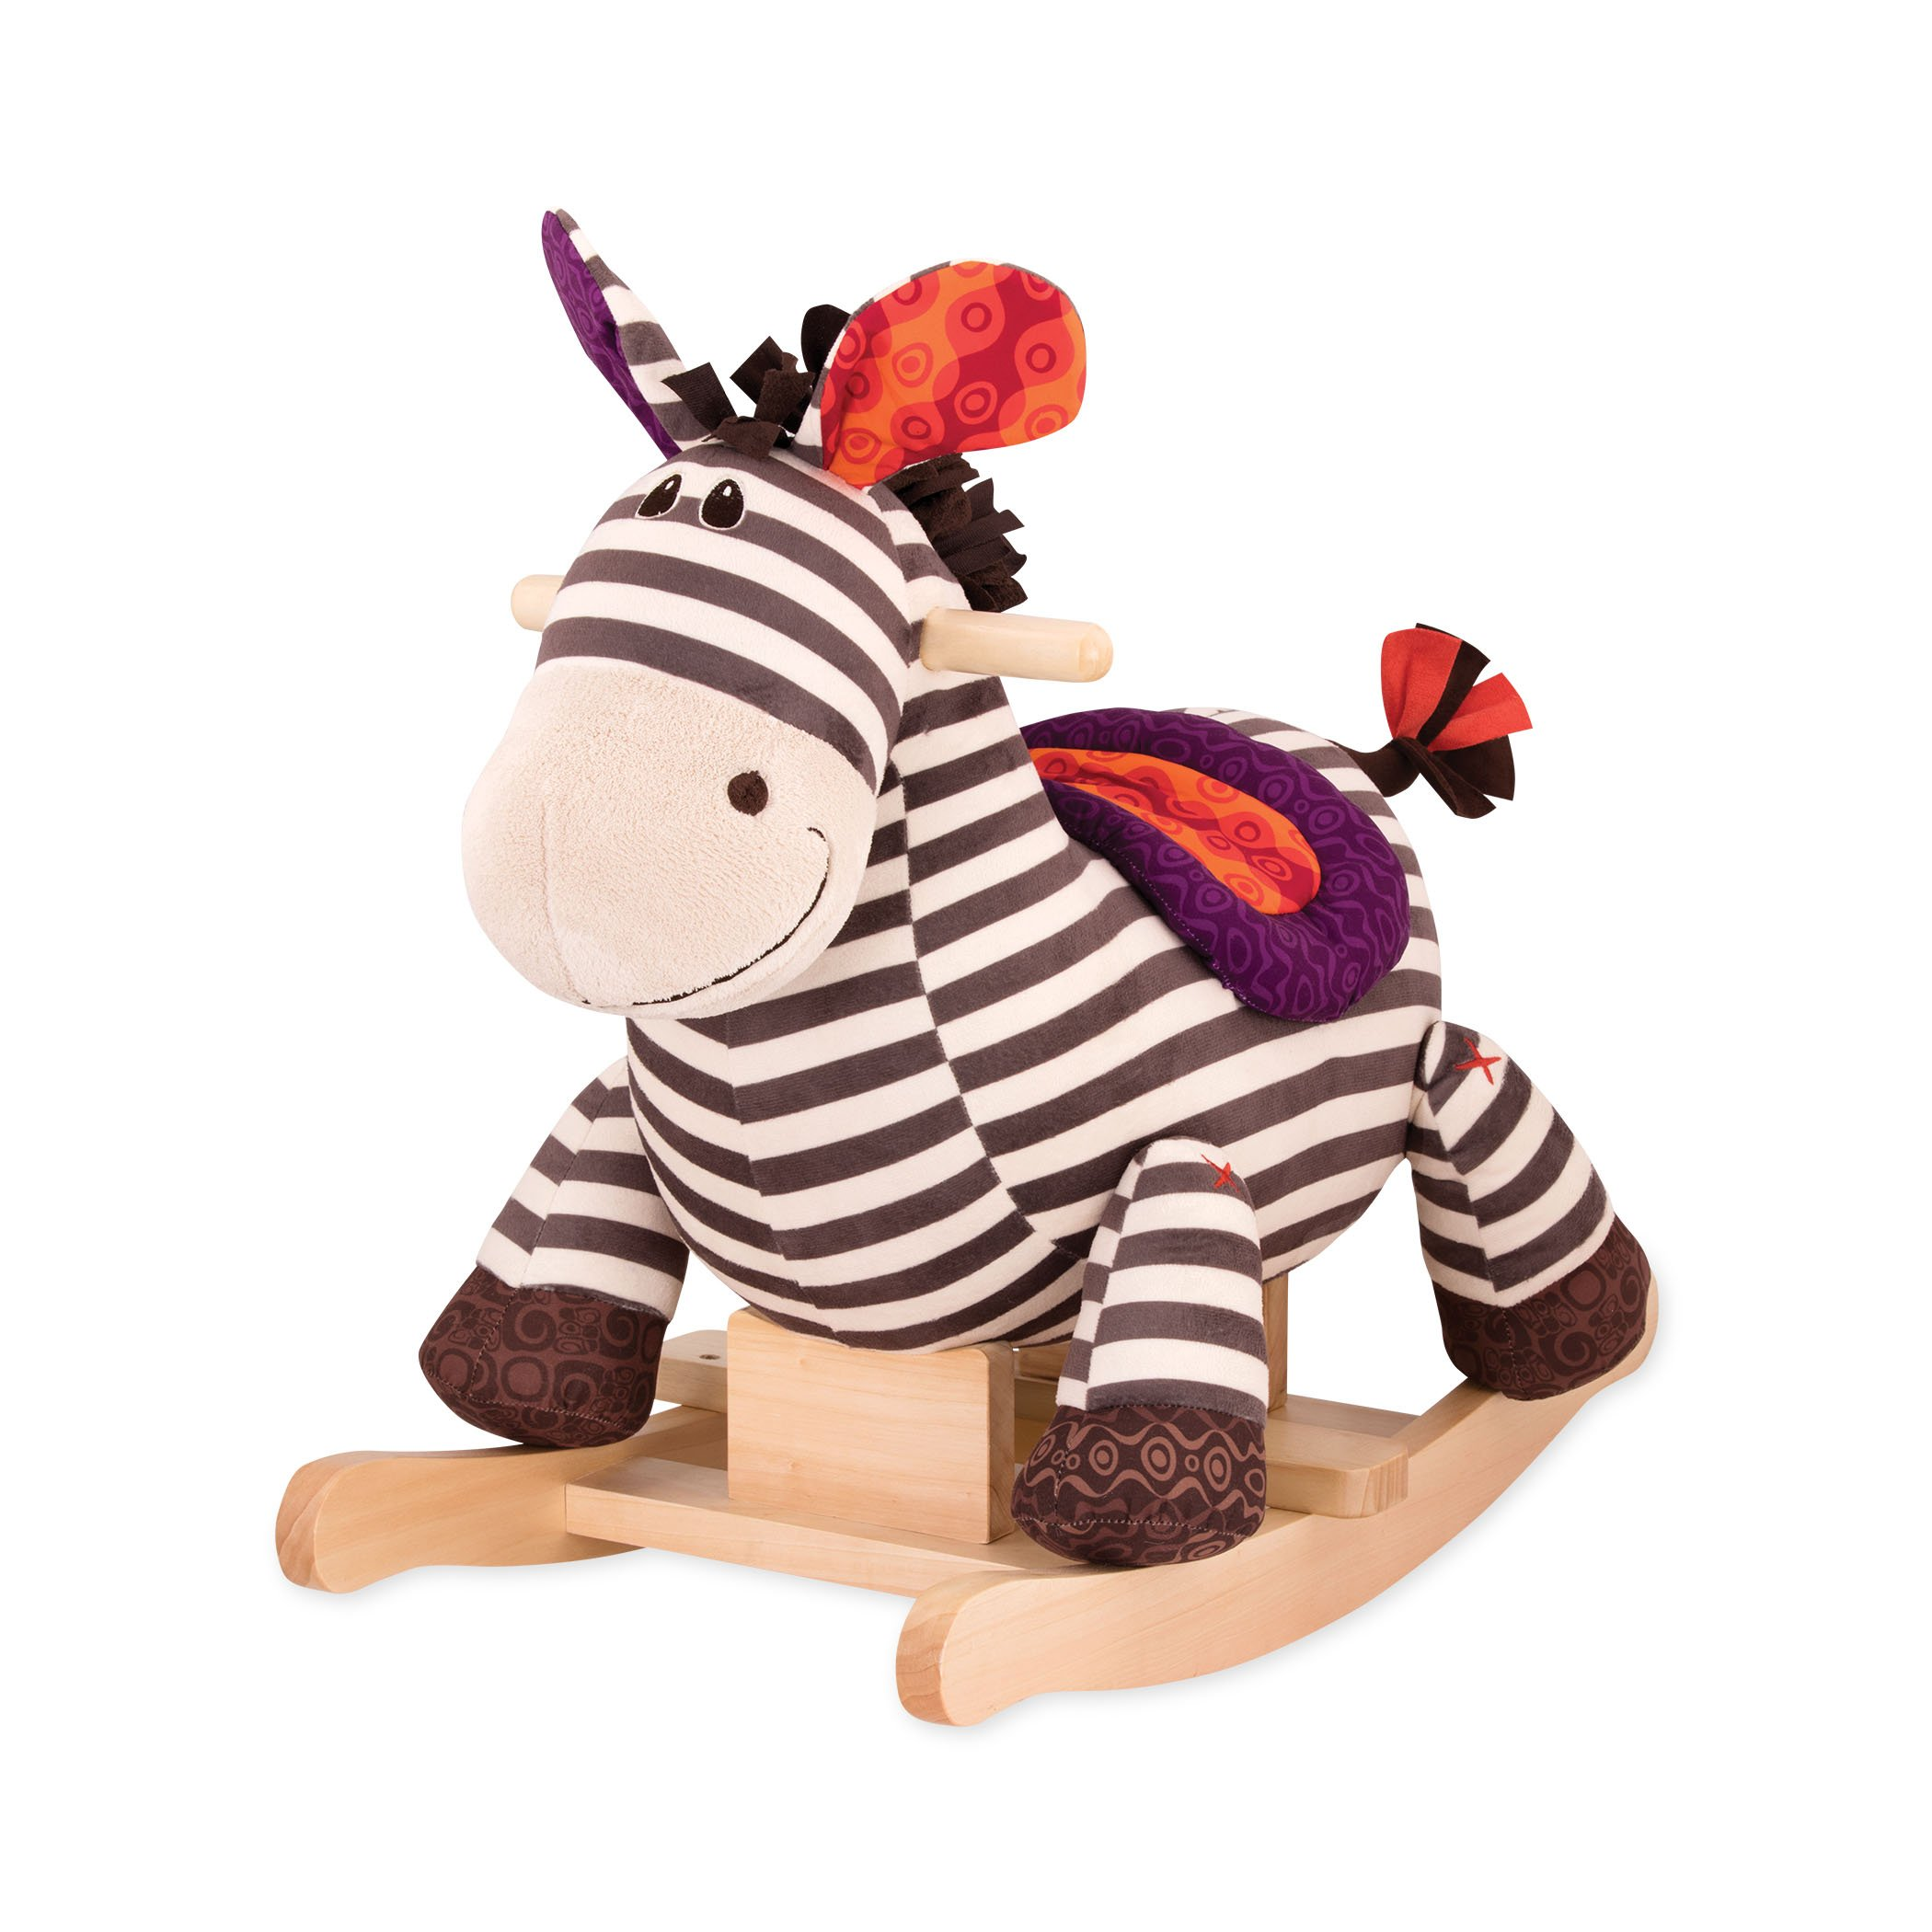 B toys – Kazoo Wooden Rocking Zebra – Rodeo Rocker – BPA Free Plush Ride On Zebra Rocking Horse for Toddlers and Babies 18m+ by B. toys by Battat (Image #1)